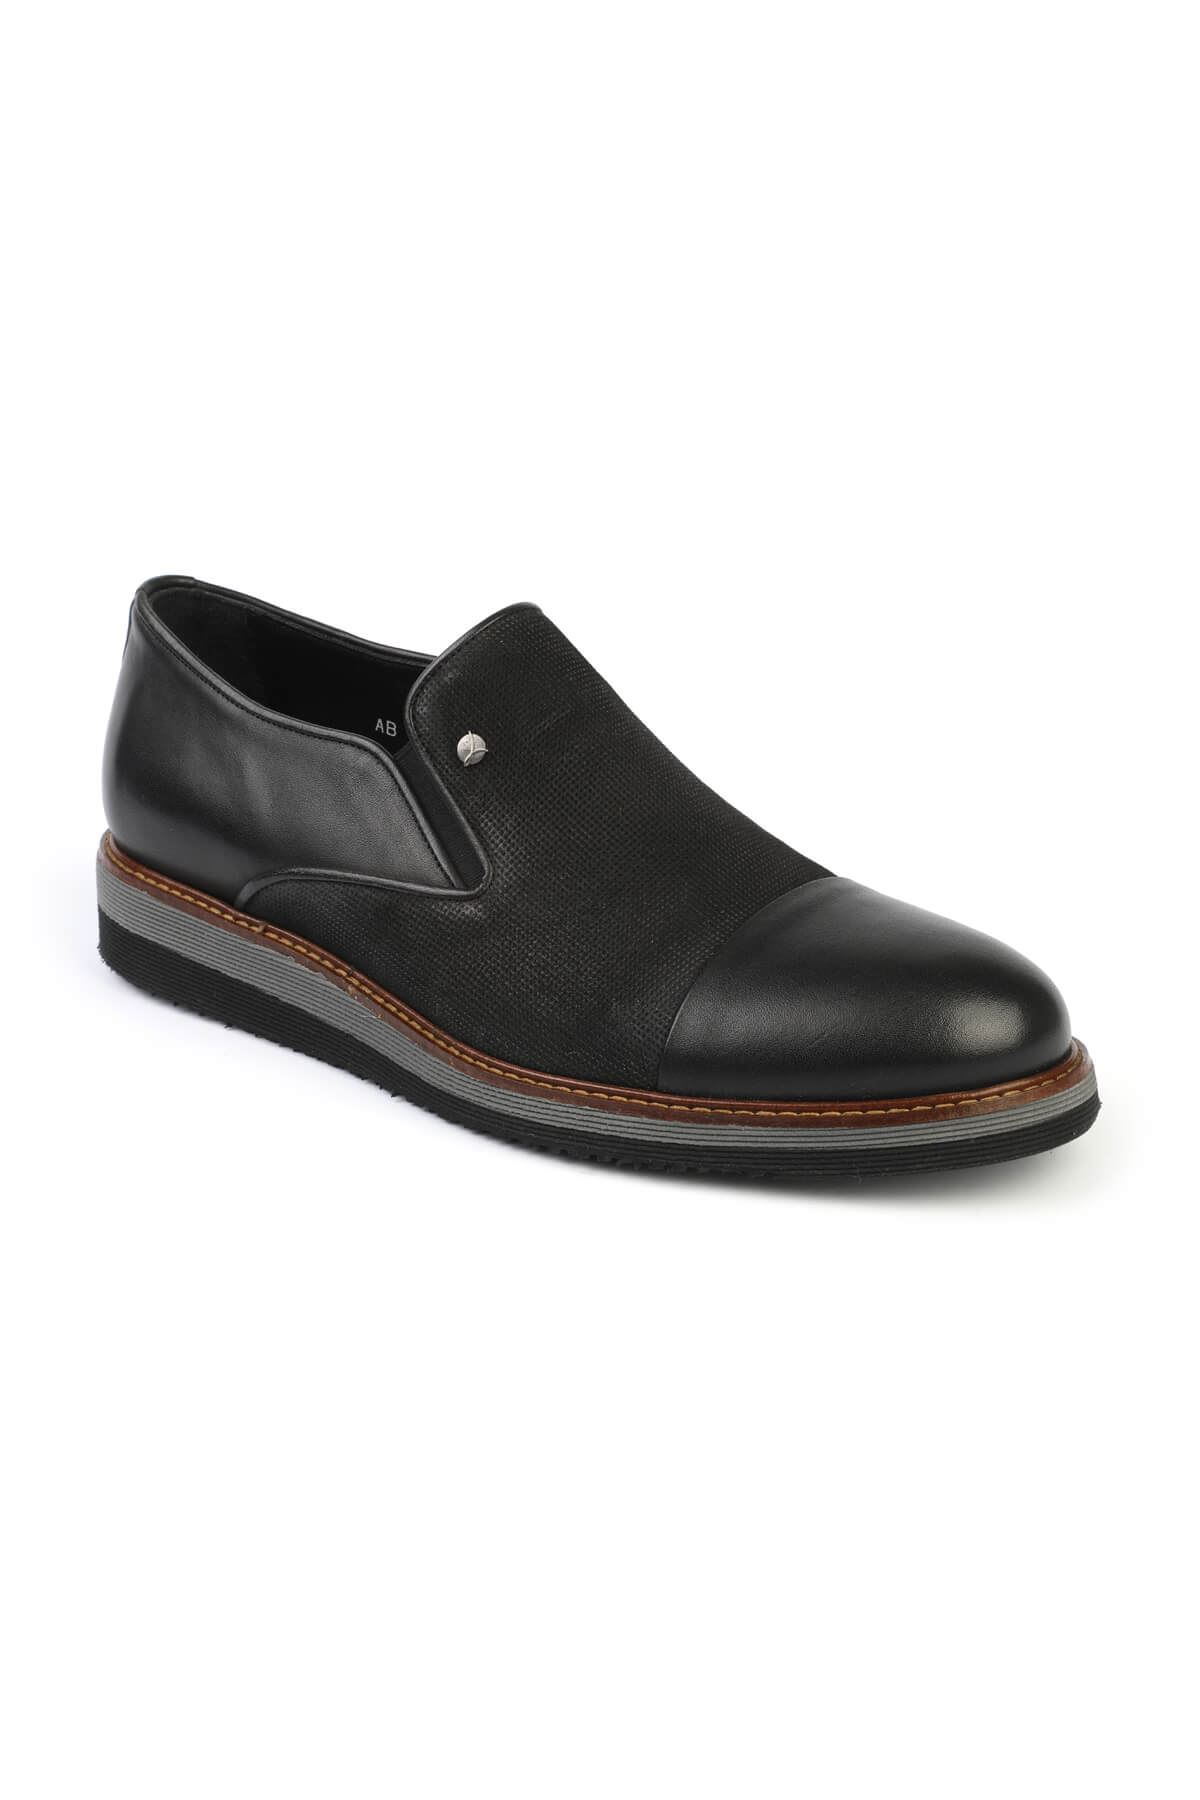 Libero 2653 Black Oxford Shoes